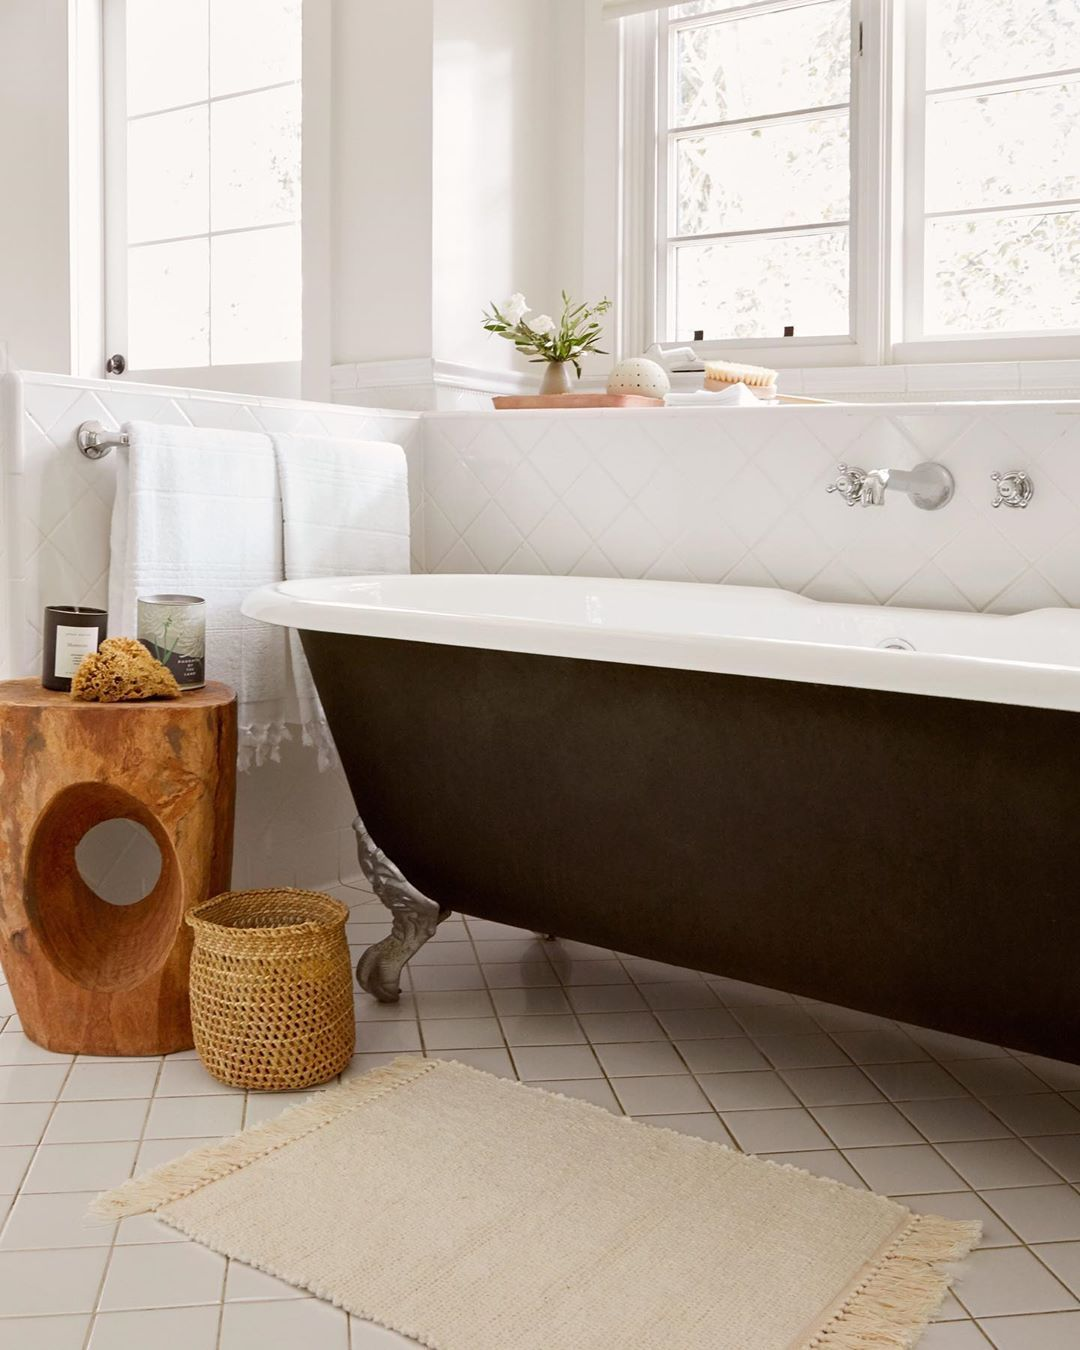 Jenni Kayne Apparel Home On Instagram Upgrade Your Bathroom With Plush Textiles And A Scented Candle To Make In 2020 Simple House Interior Decorating Home Decor